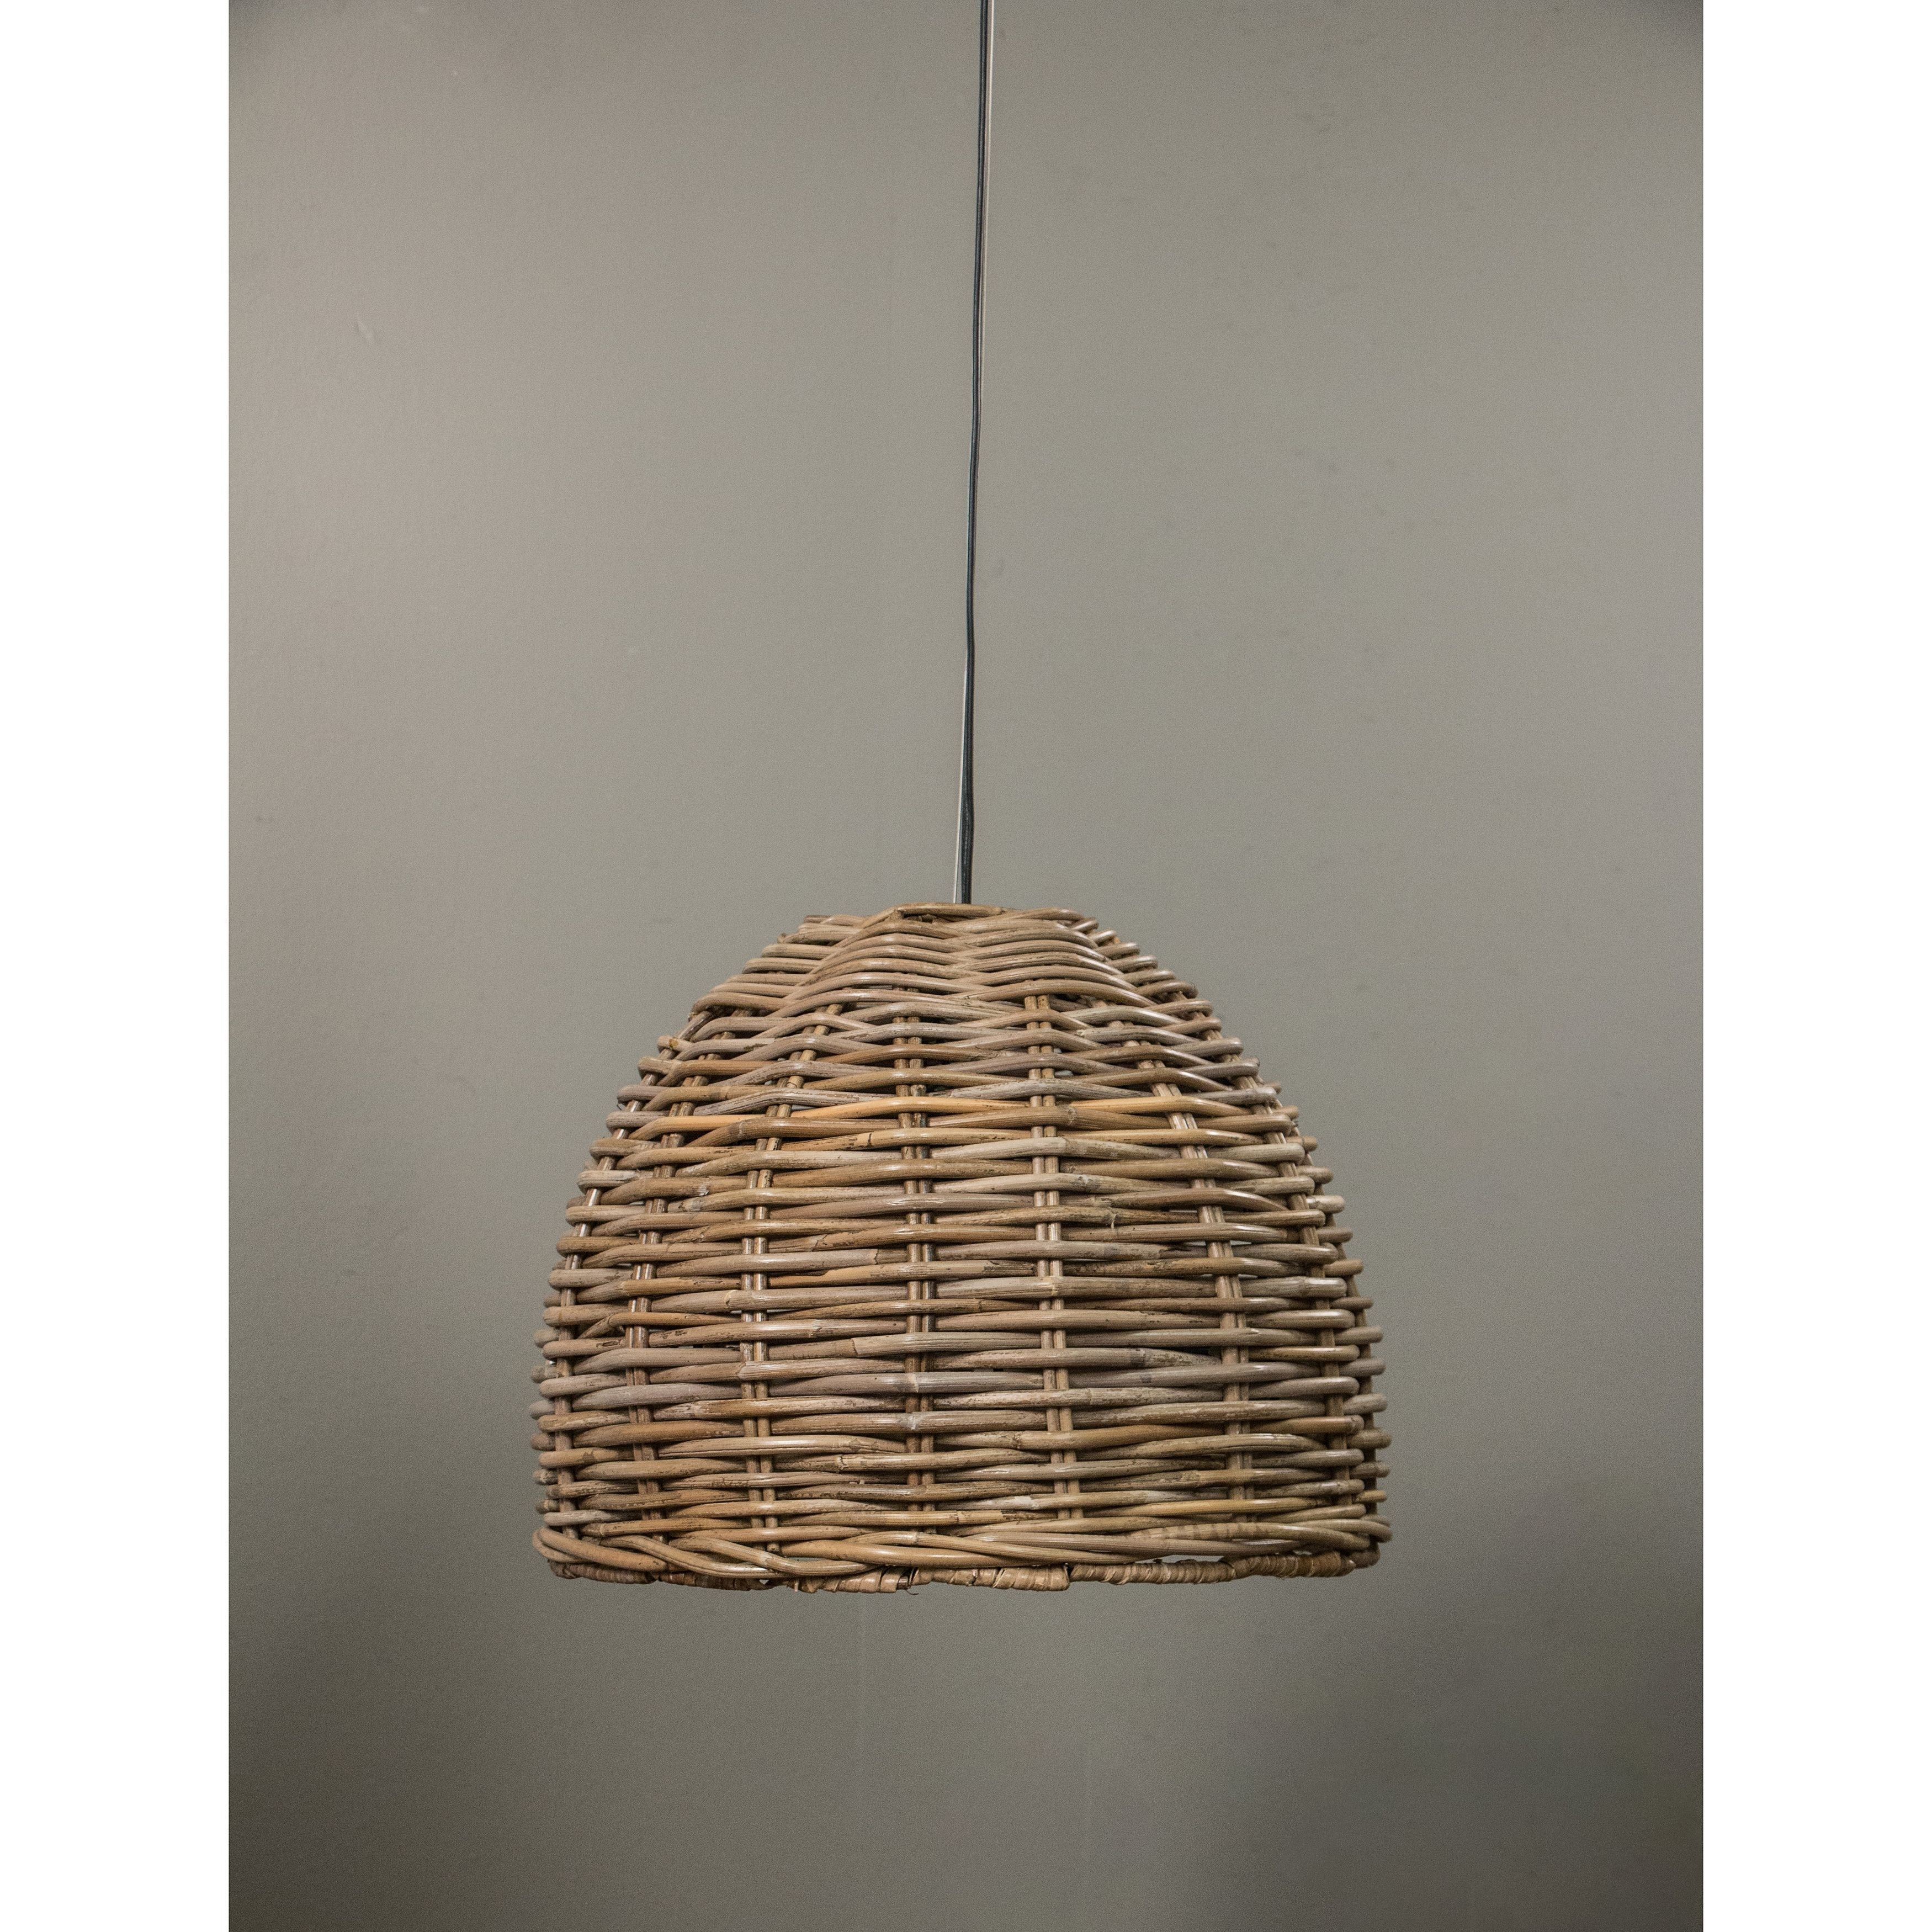 Our Dawson Hanging Lamp Is Made With The Natural Material, Rattan Regarding Outdoor Hanging Wicker Lights (#11 of 15)